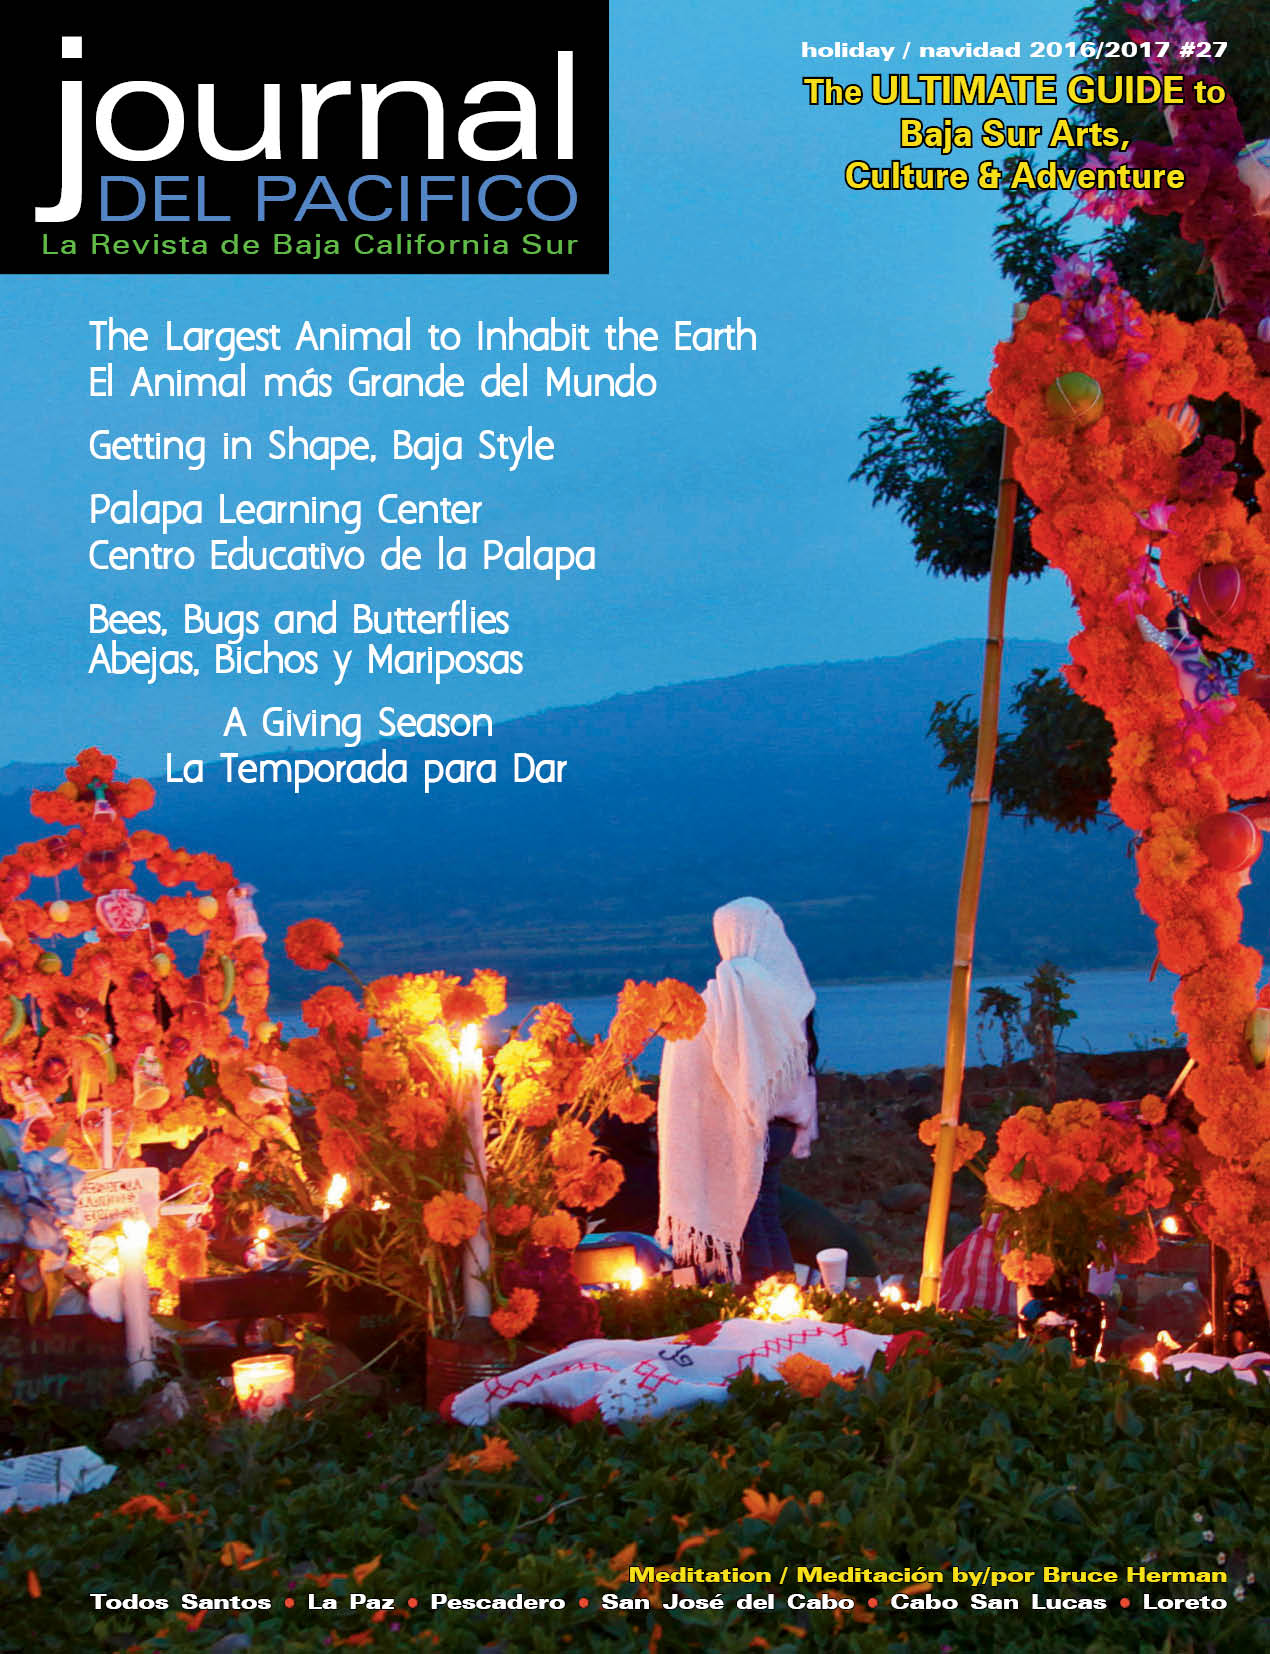 Holiday 2016/2017 Issue of Journal del Pacifico